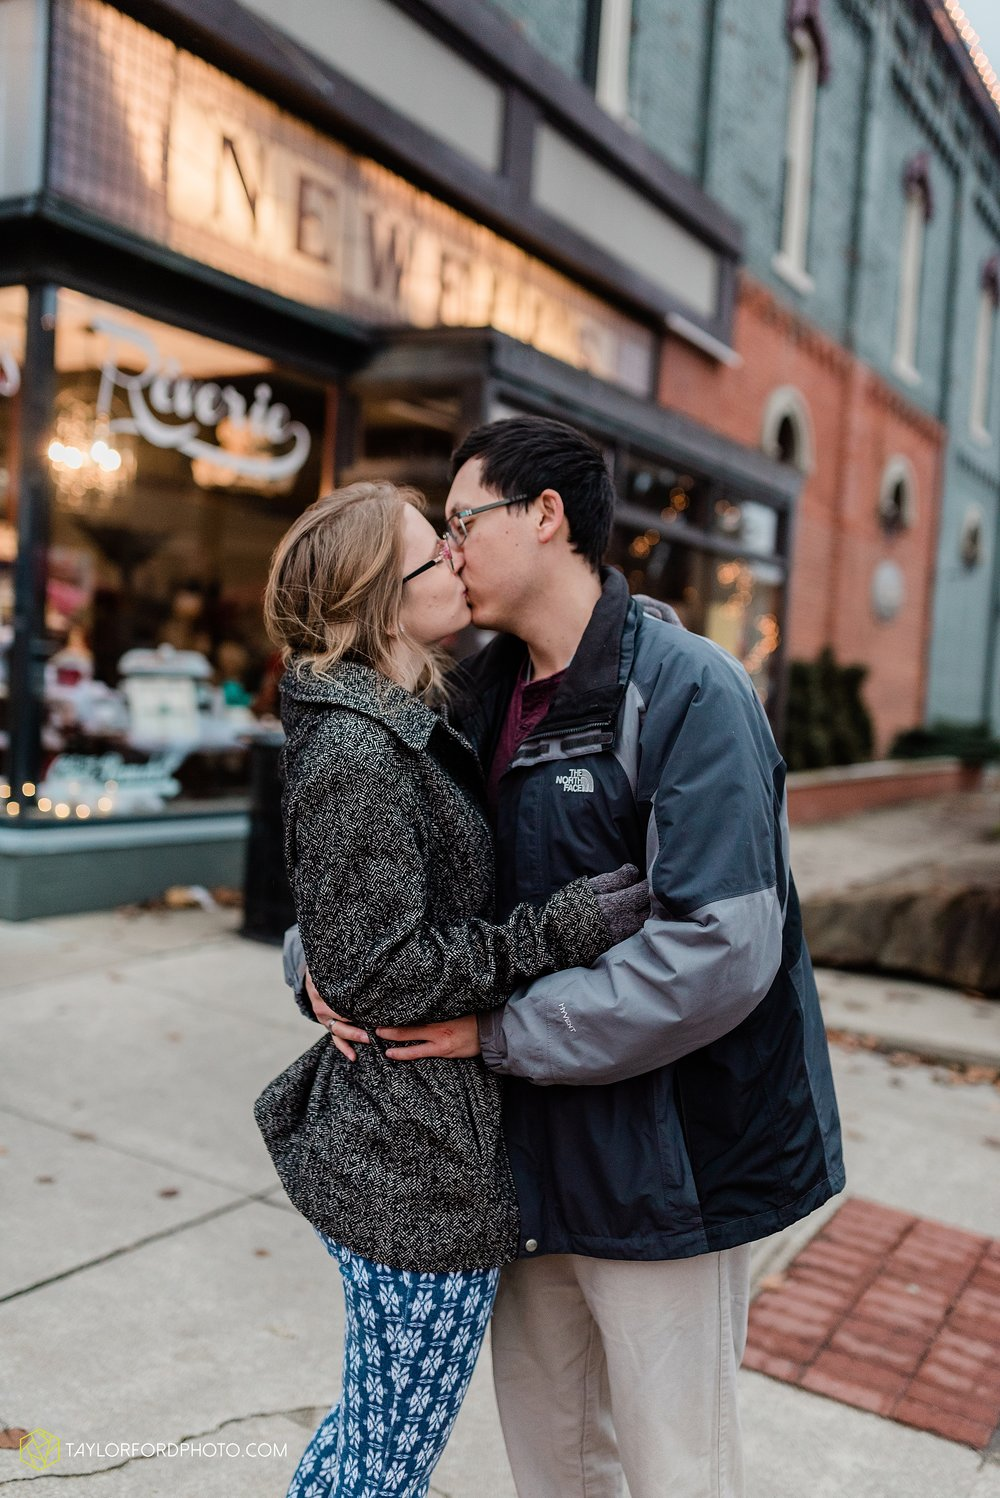 at-home-fidler-pond-park-downtown-goshen-indiana-engagement-photography-taylor-ford-hirschy-photographer_2004.jpg